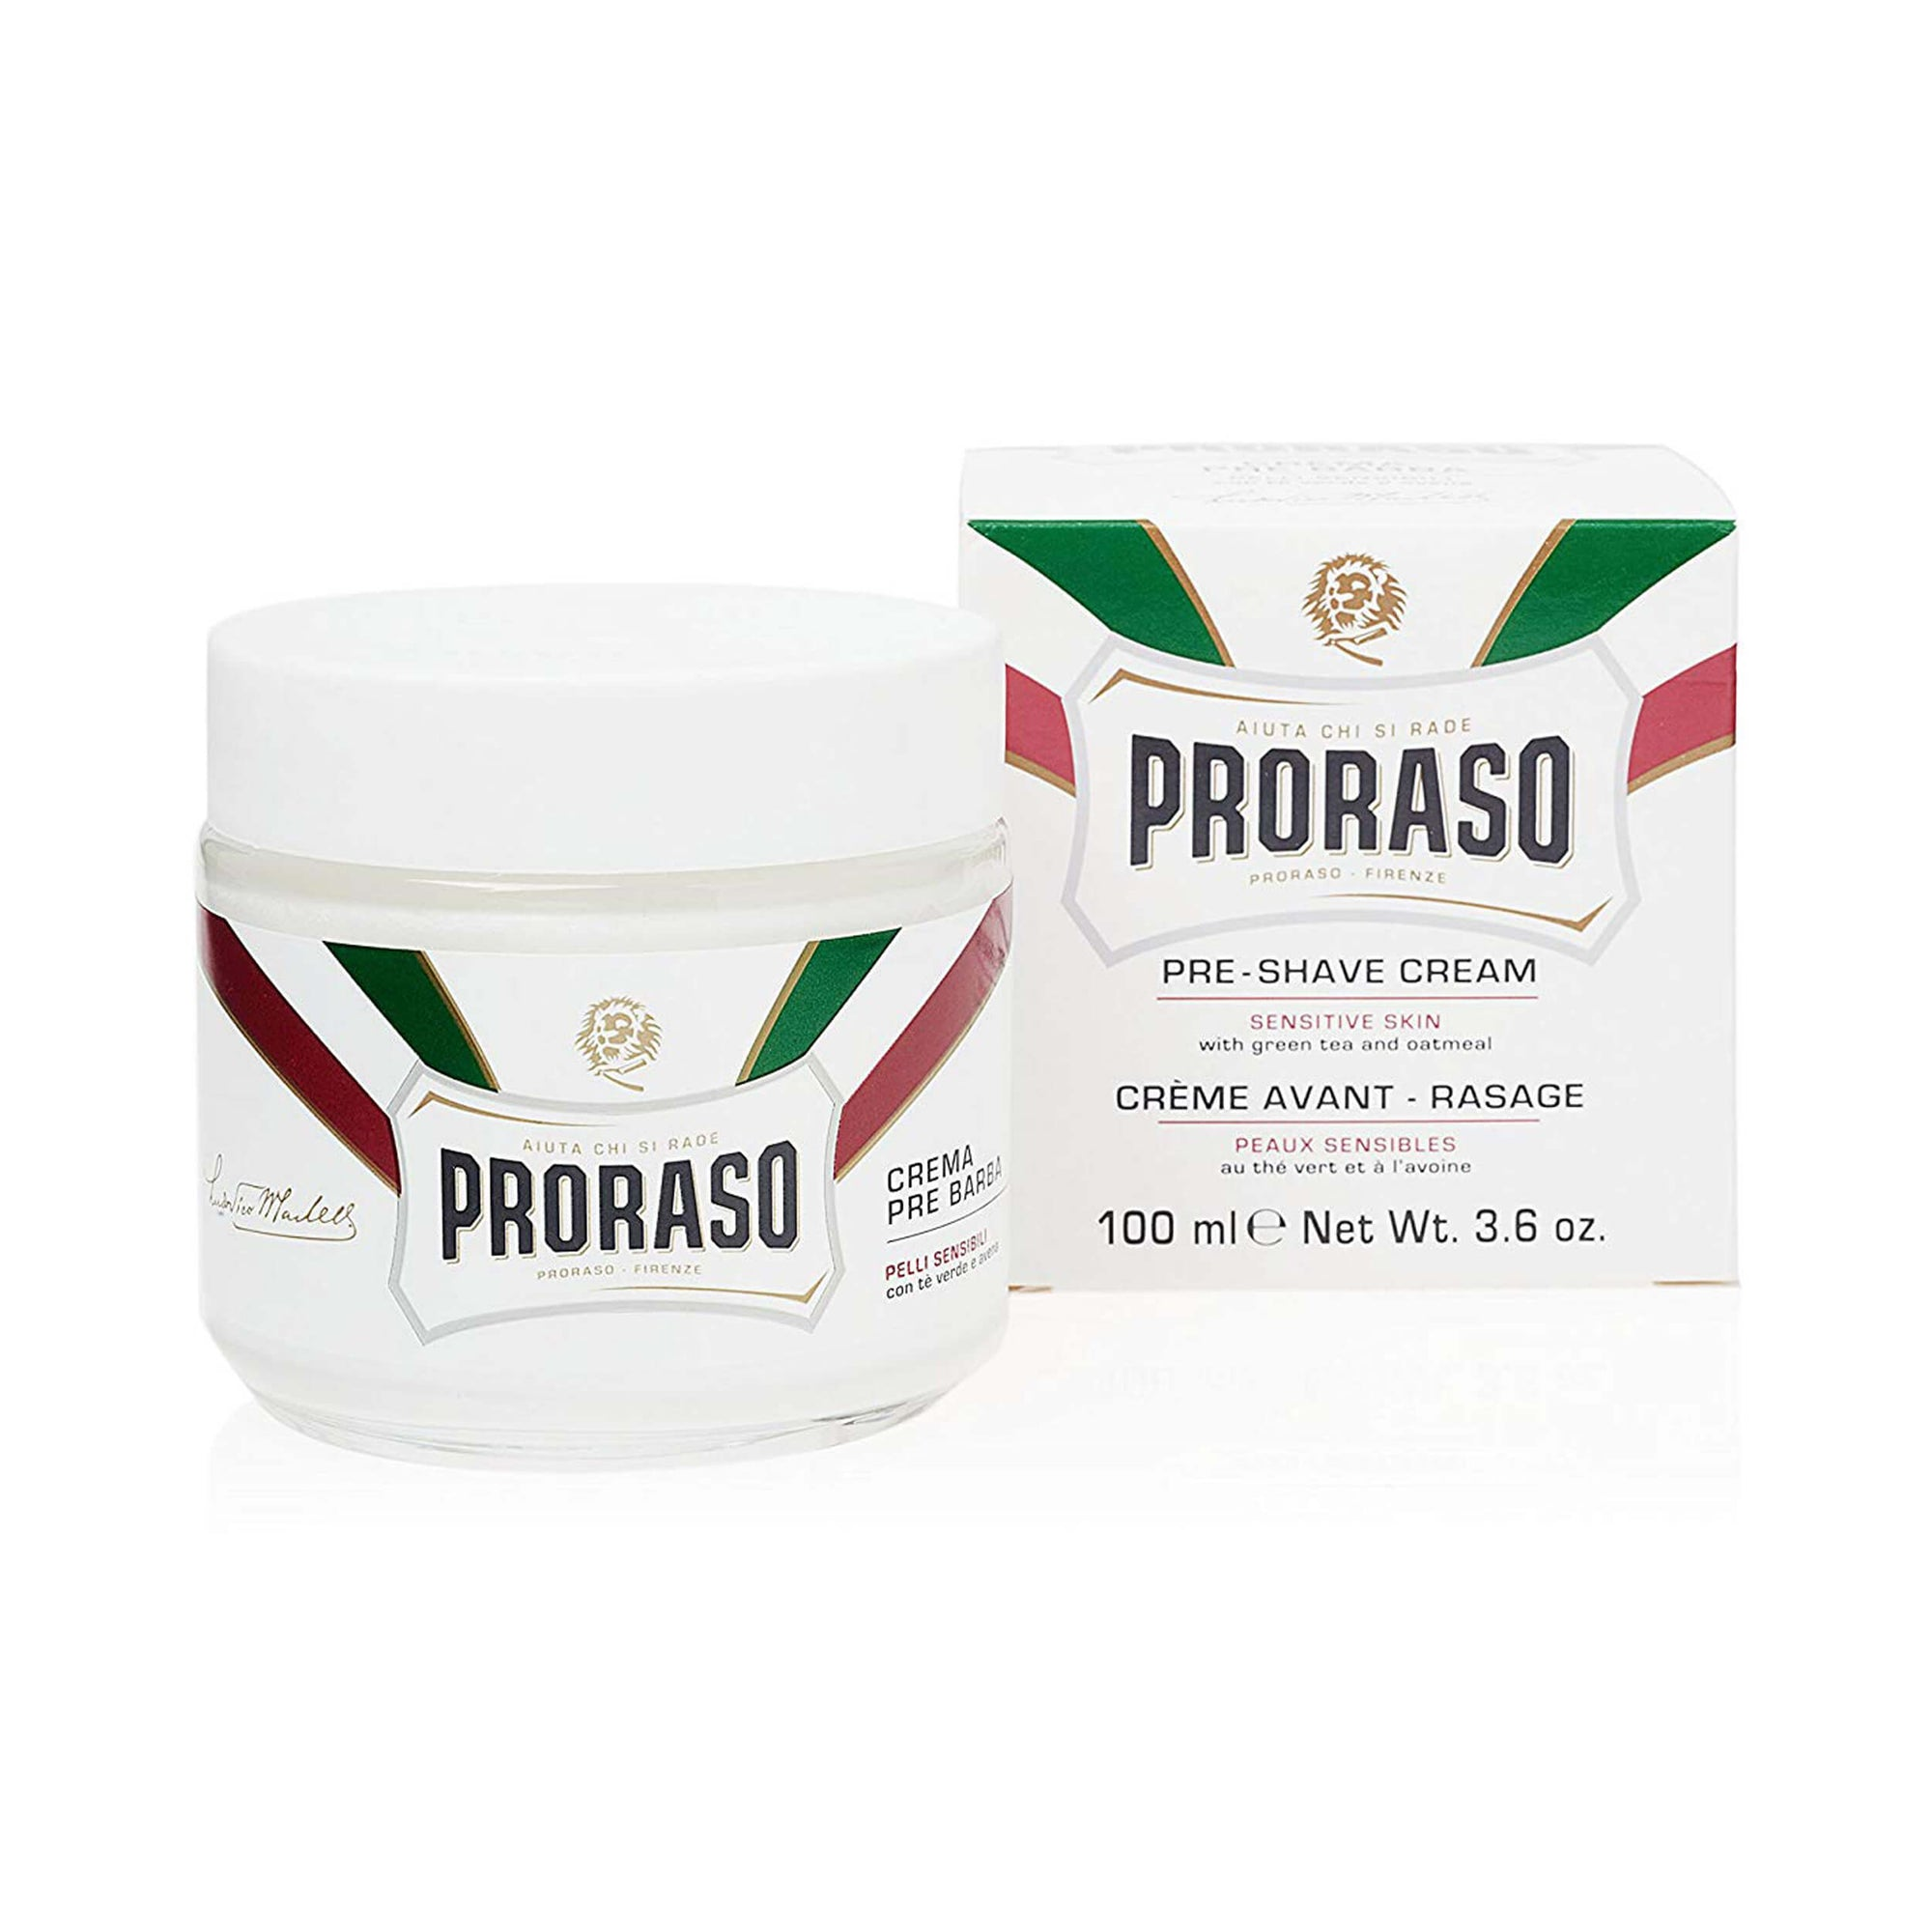 Proraso Pre-Shave Cream Sensitive Skin 100 mL